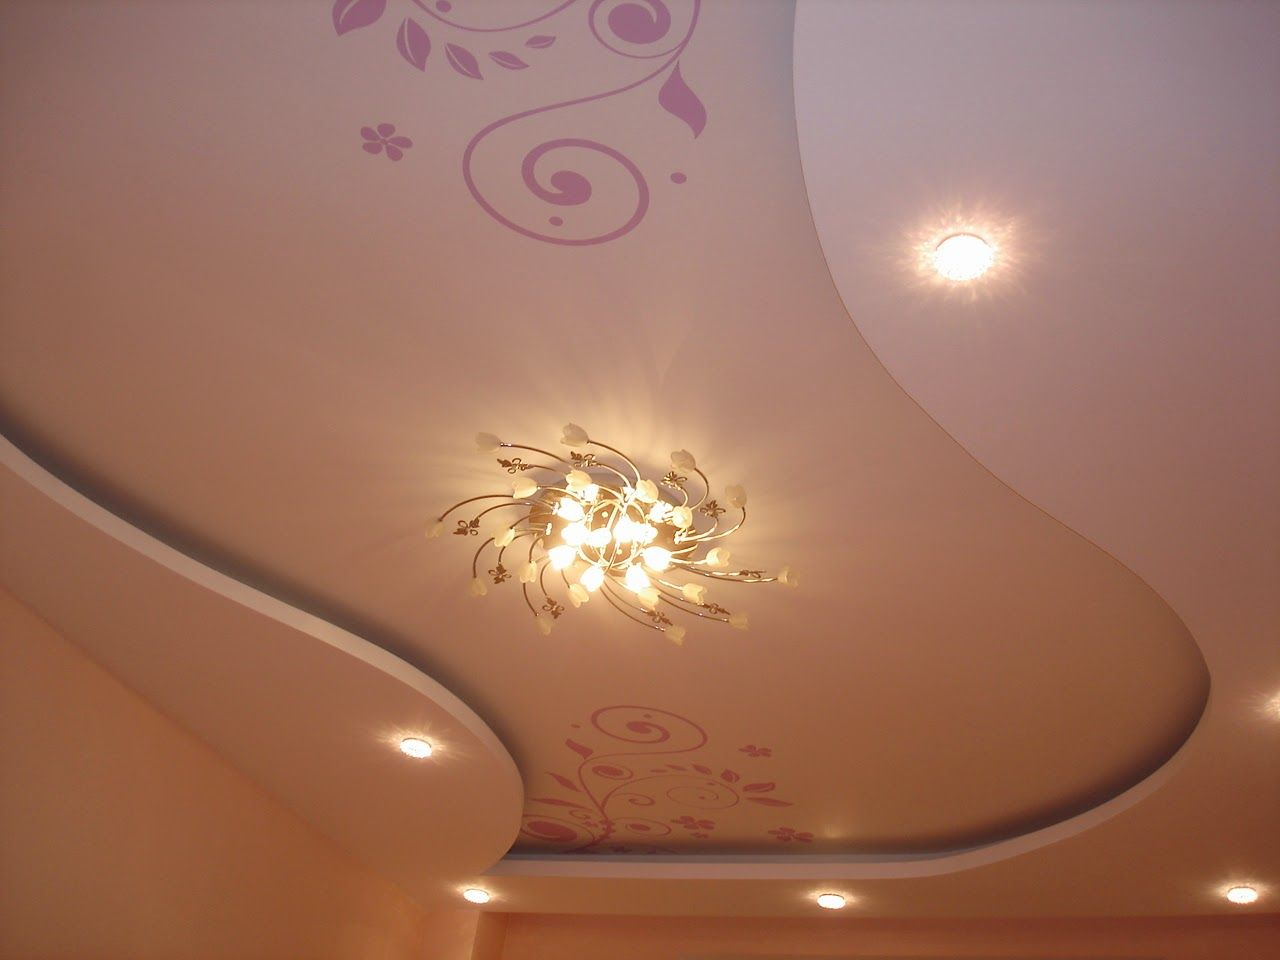 Gypsum False Ceiling Design With Ceiling Paintings For Living Room Inspiration Plaster Of Paris Ceiling Designs For Living Room Design Ideas